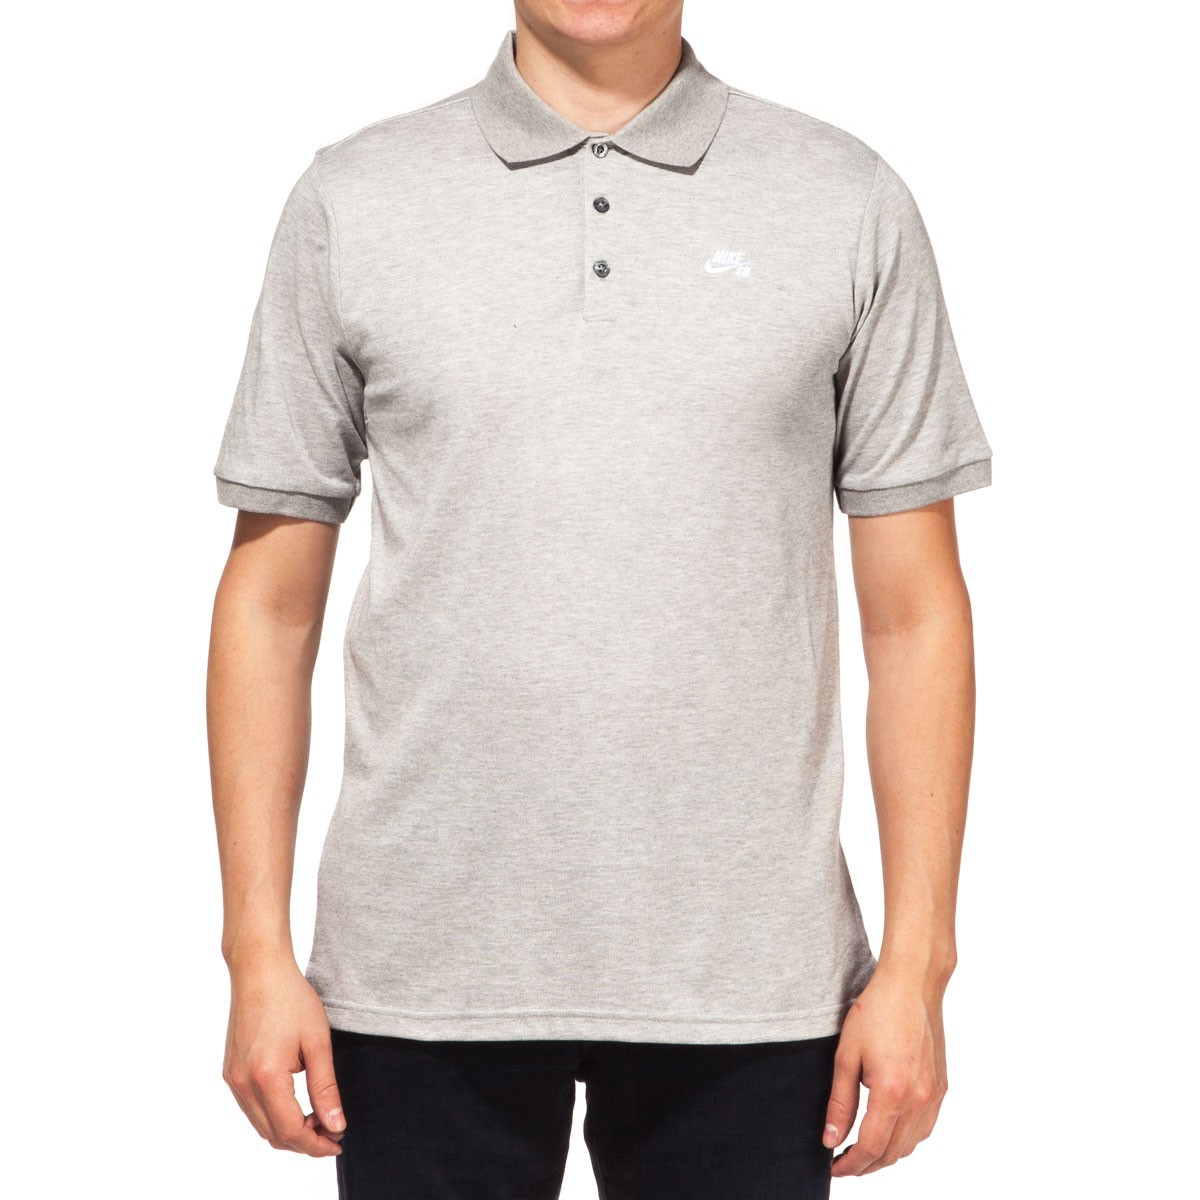 Nike SB Dri-FIT Pique Polo Shirt - Dark Grey Heather/White